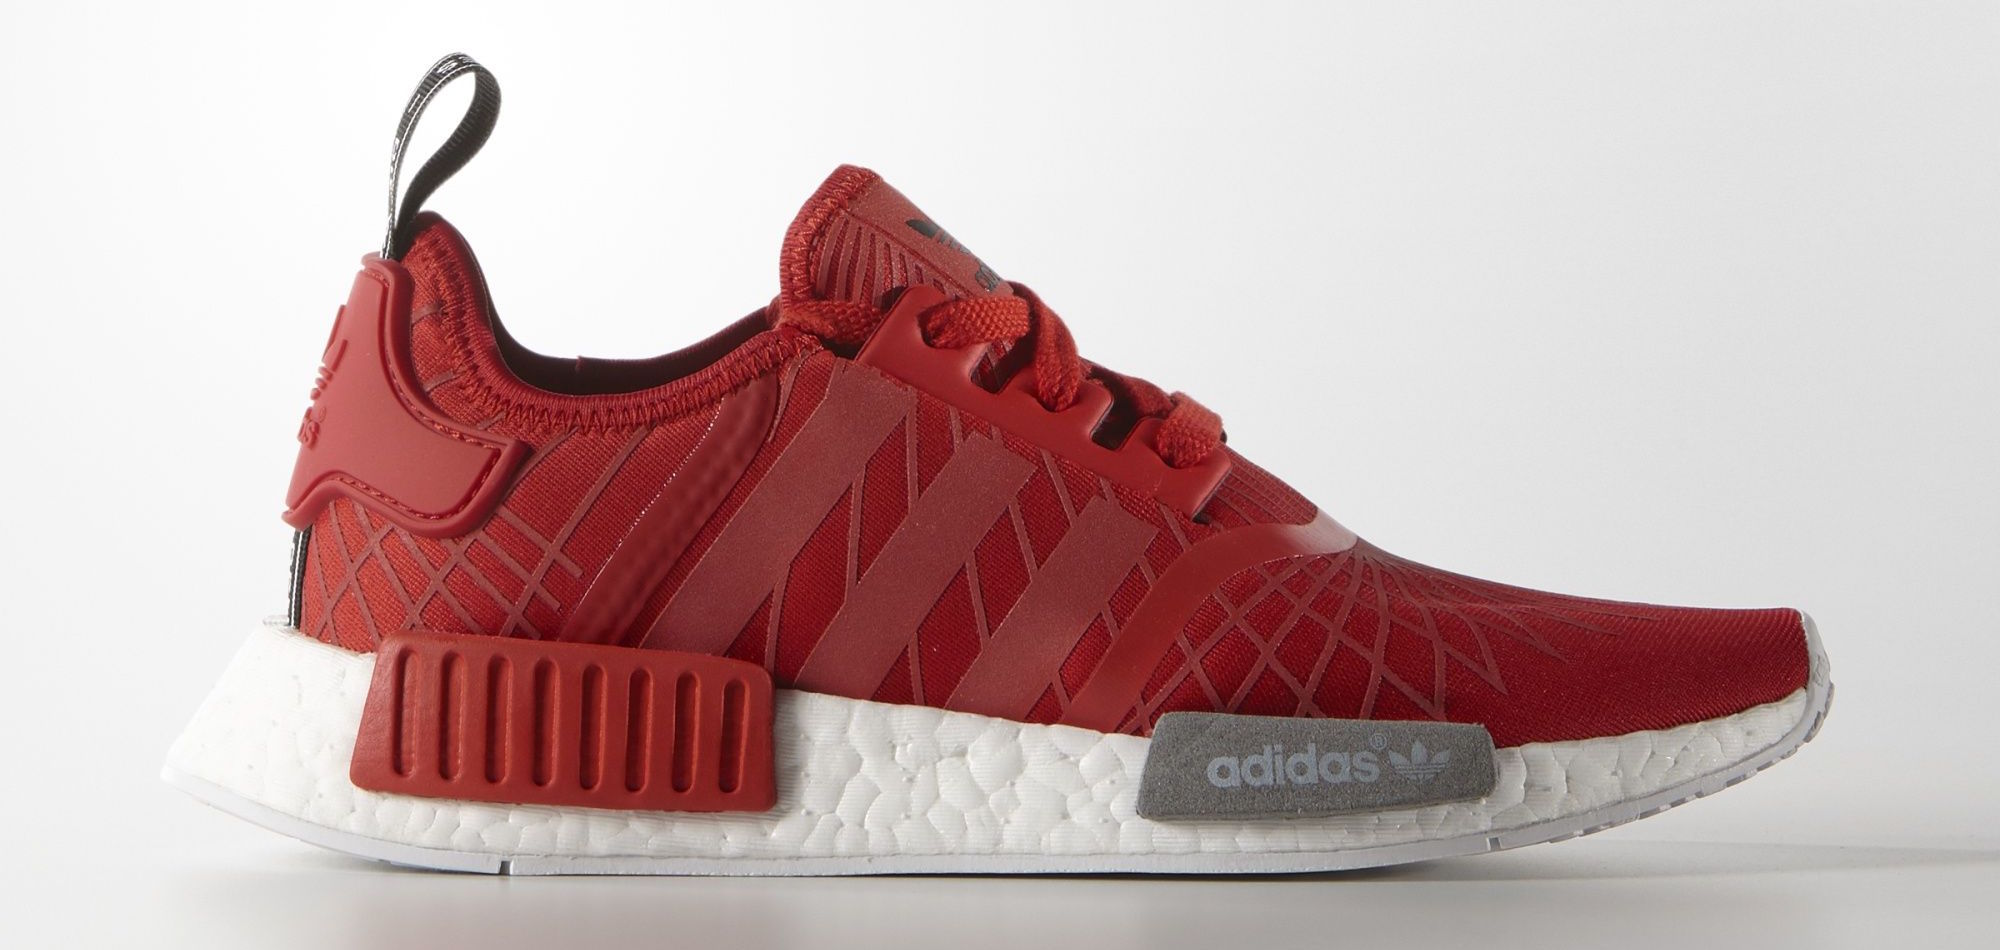 adidas NMD Runner R1 Lush red